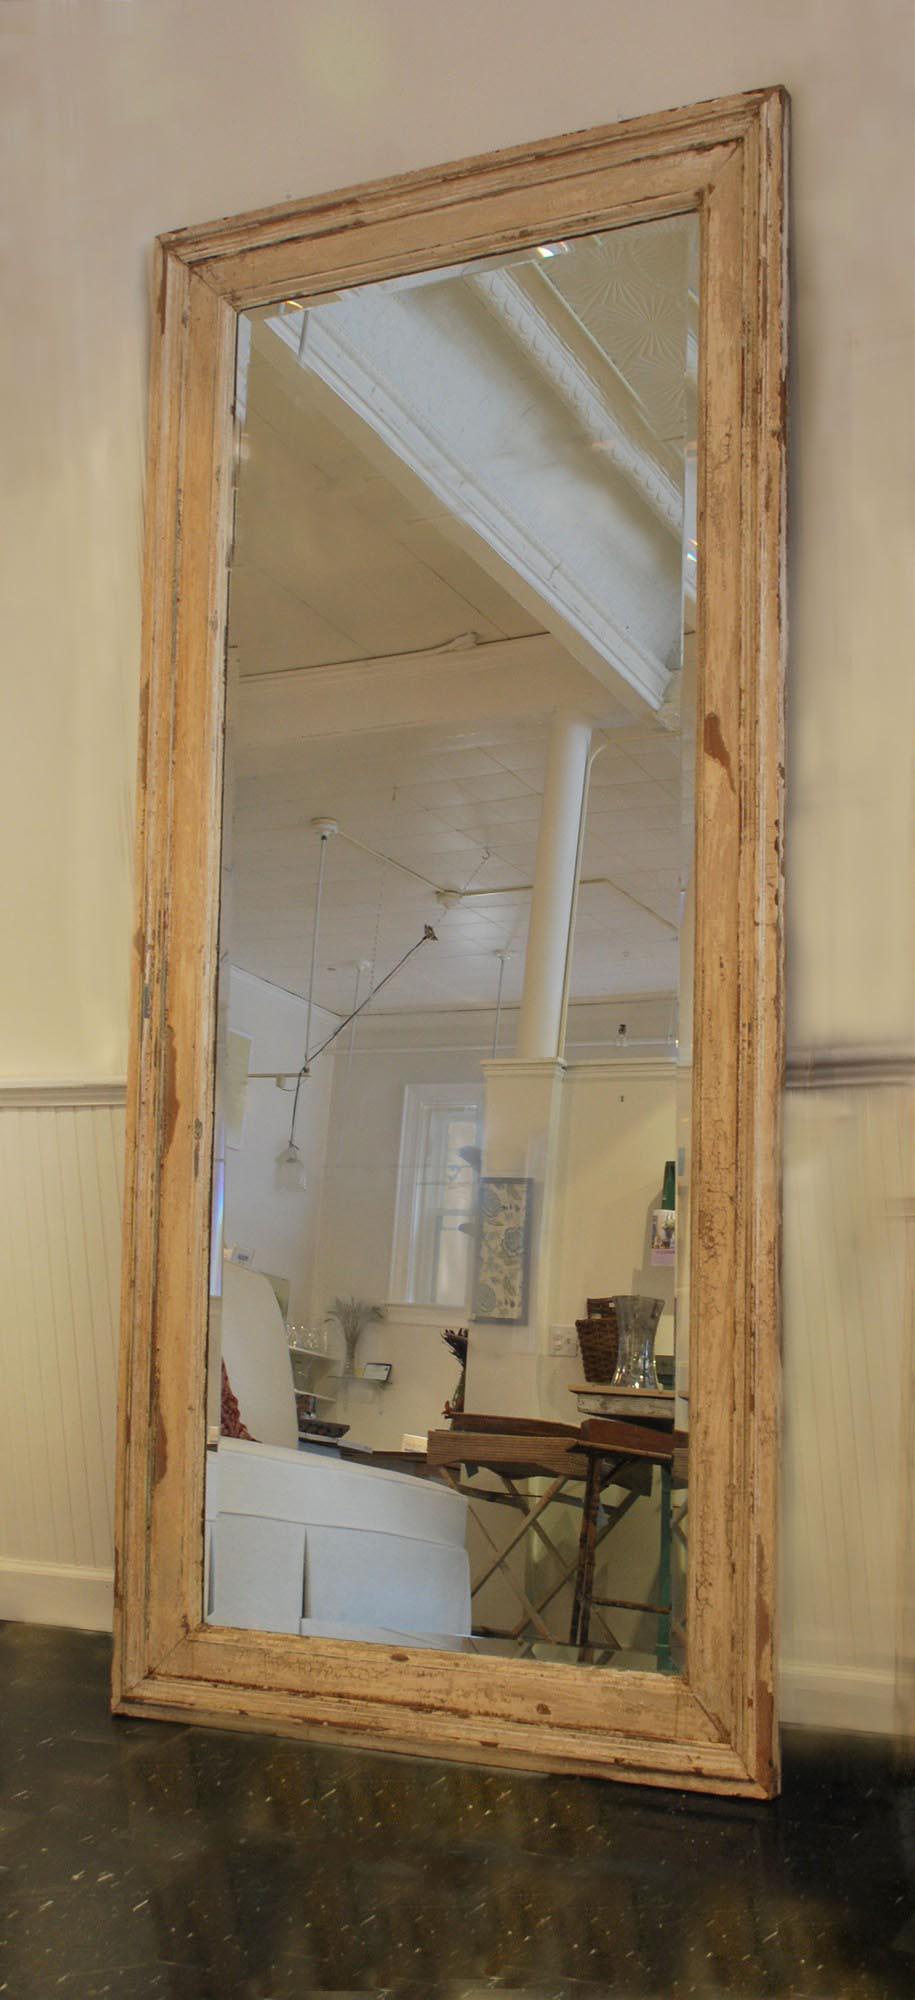 Reclaimed wood framed mirrors best decor things for Wood framed mirrors